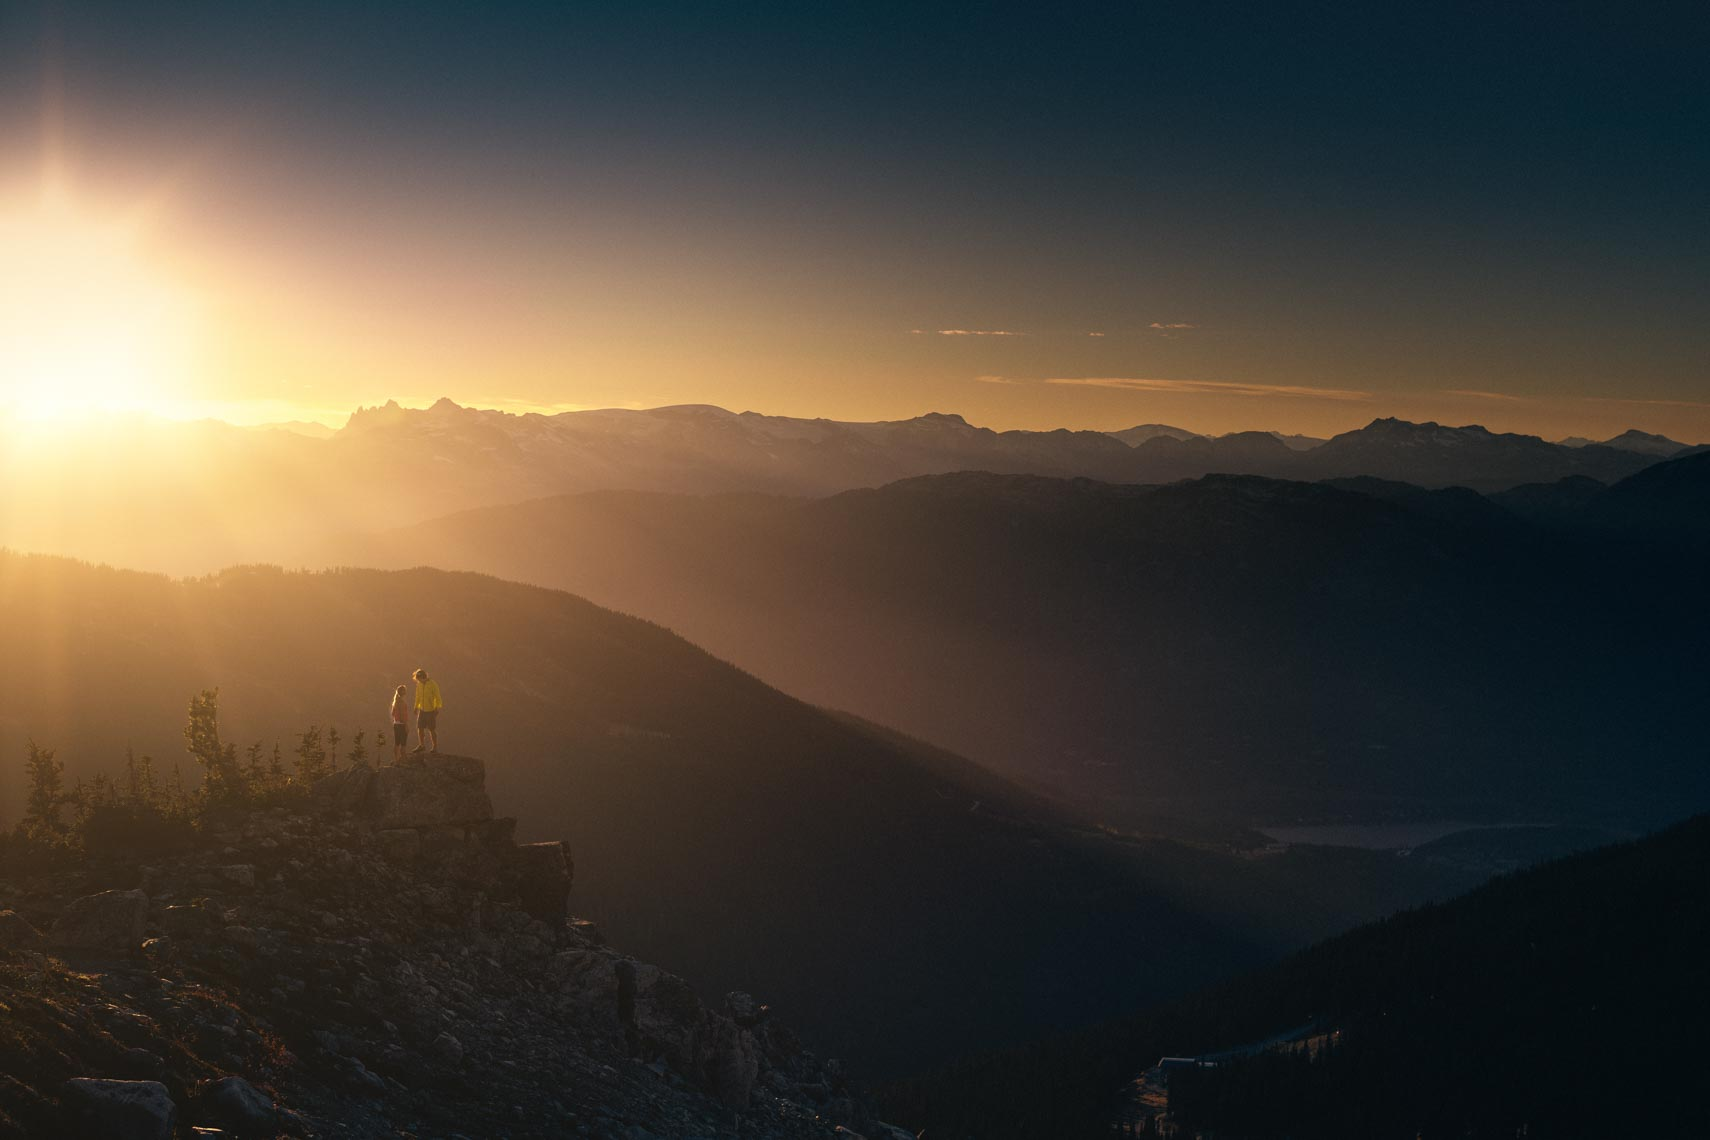 Two hikers at sunset in the mountains of Whistler, British Columbia